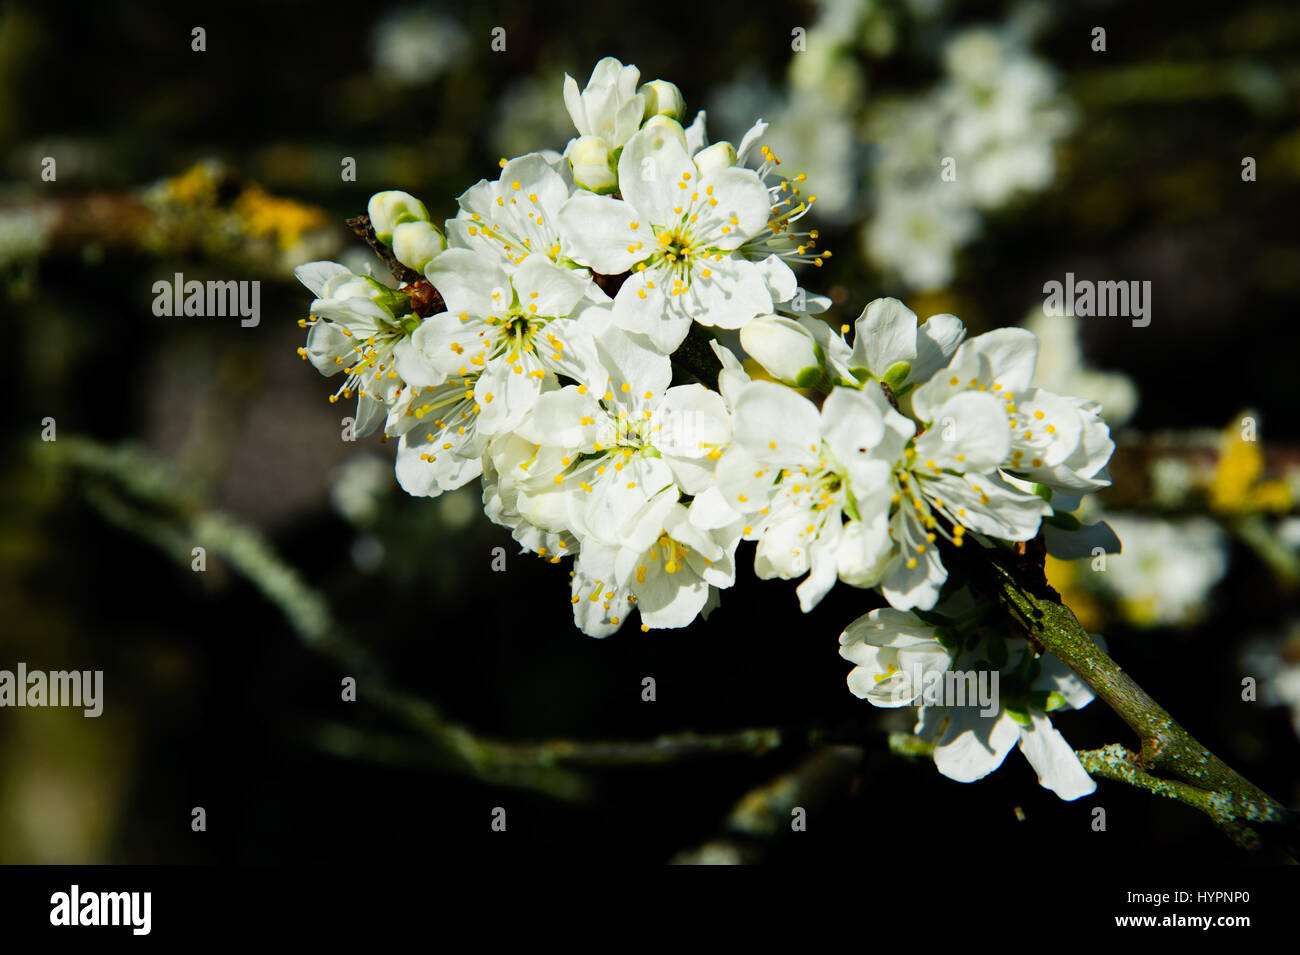 Rosaceae Prunus Domestica 'Opal' blossom on a spring time in the garden - Stock Image